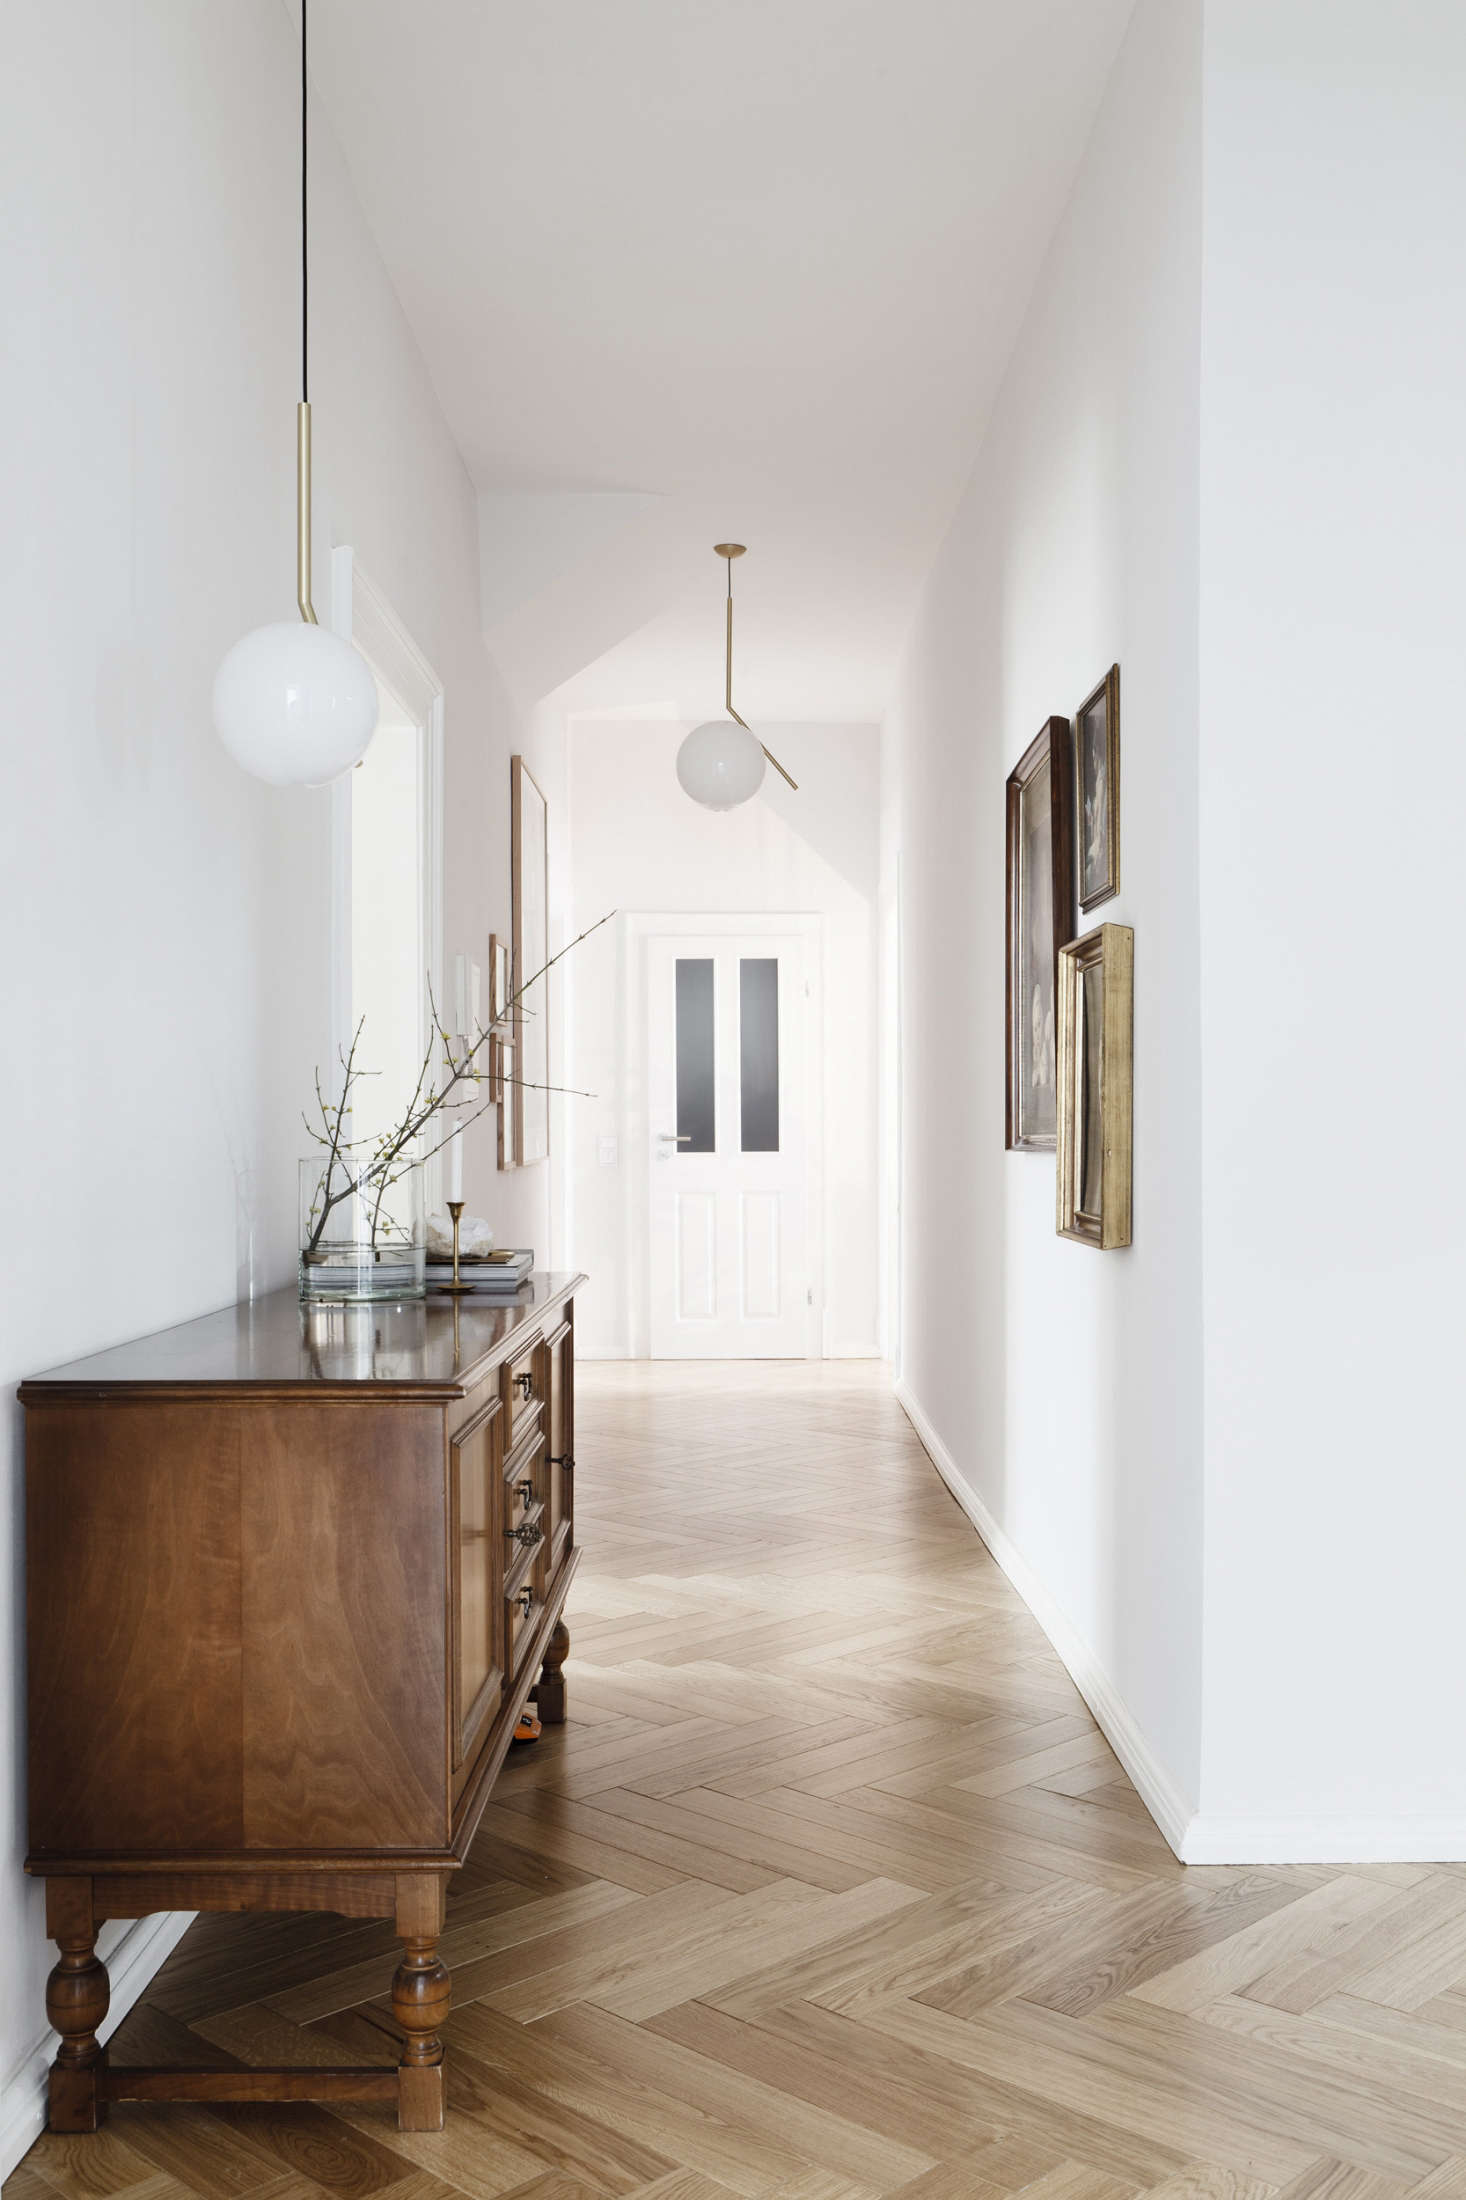 Herringbone floors in a German apartment by Leipzig-based Studio Oink, featured in Earthly and Ethereal: An Apartment Makeover by Studio Oink. Photograph by and courtesy of Studio Oink.